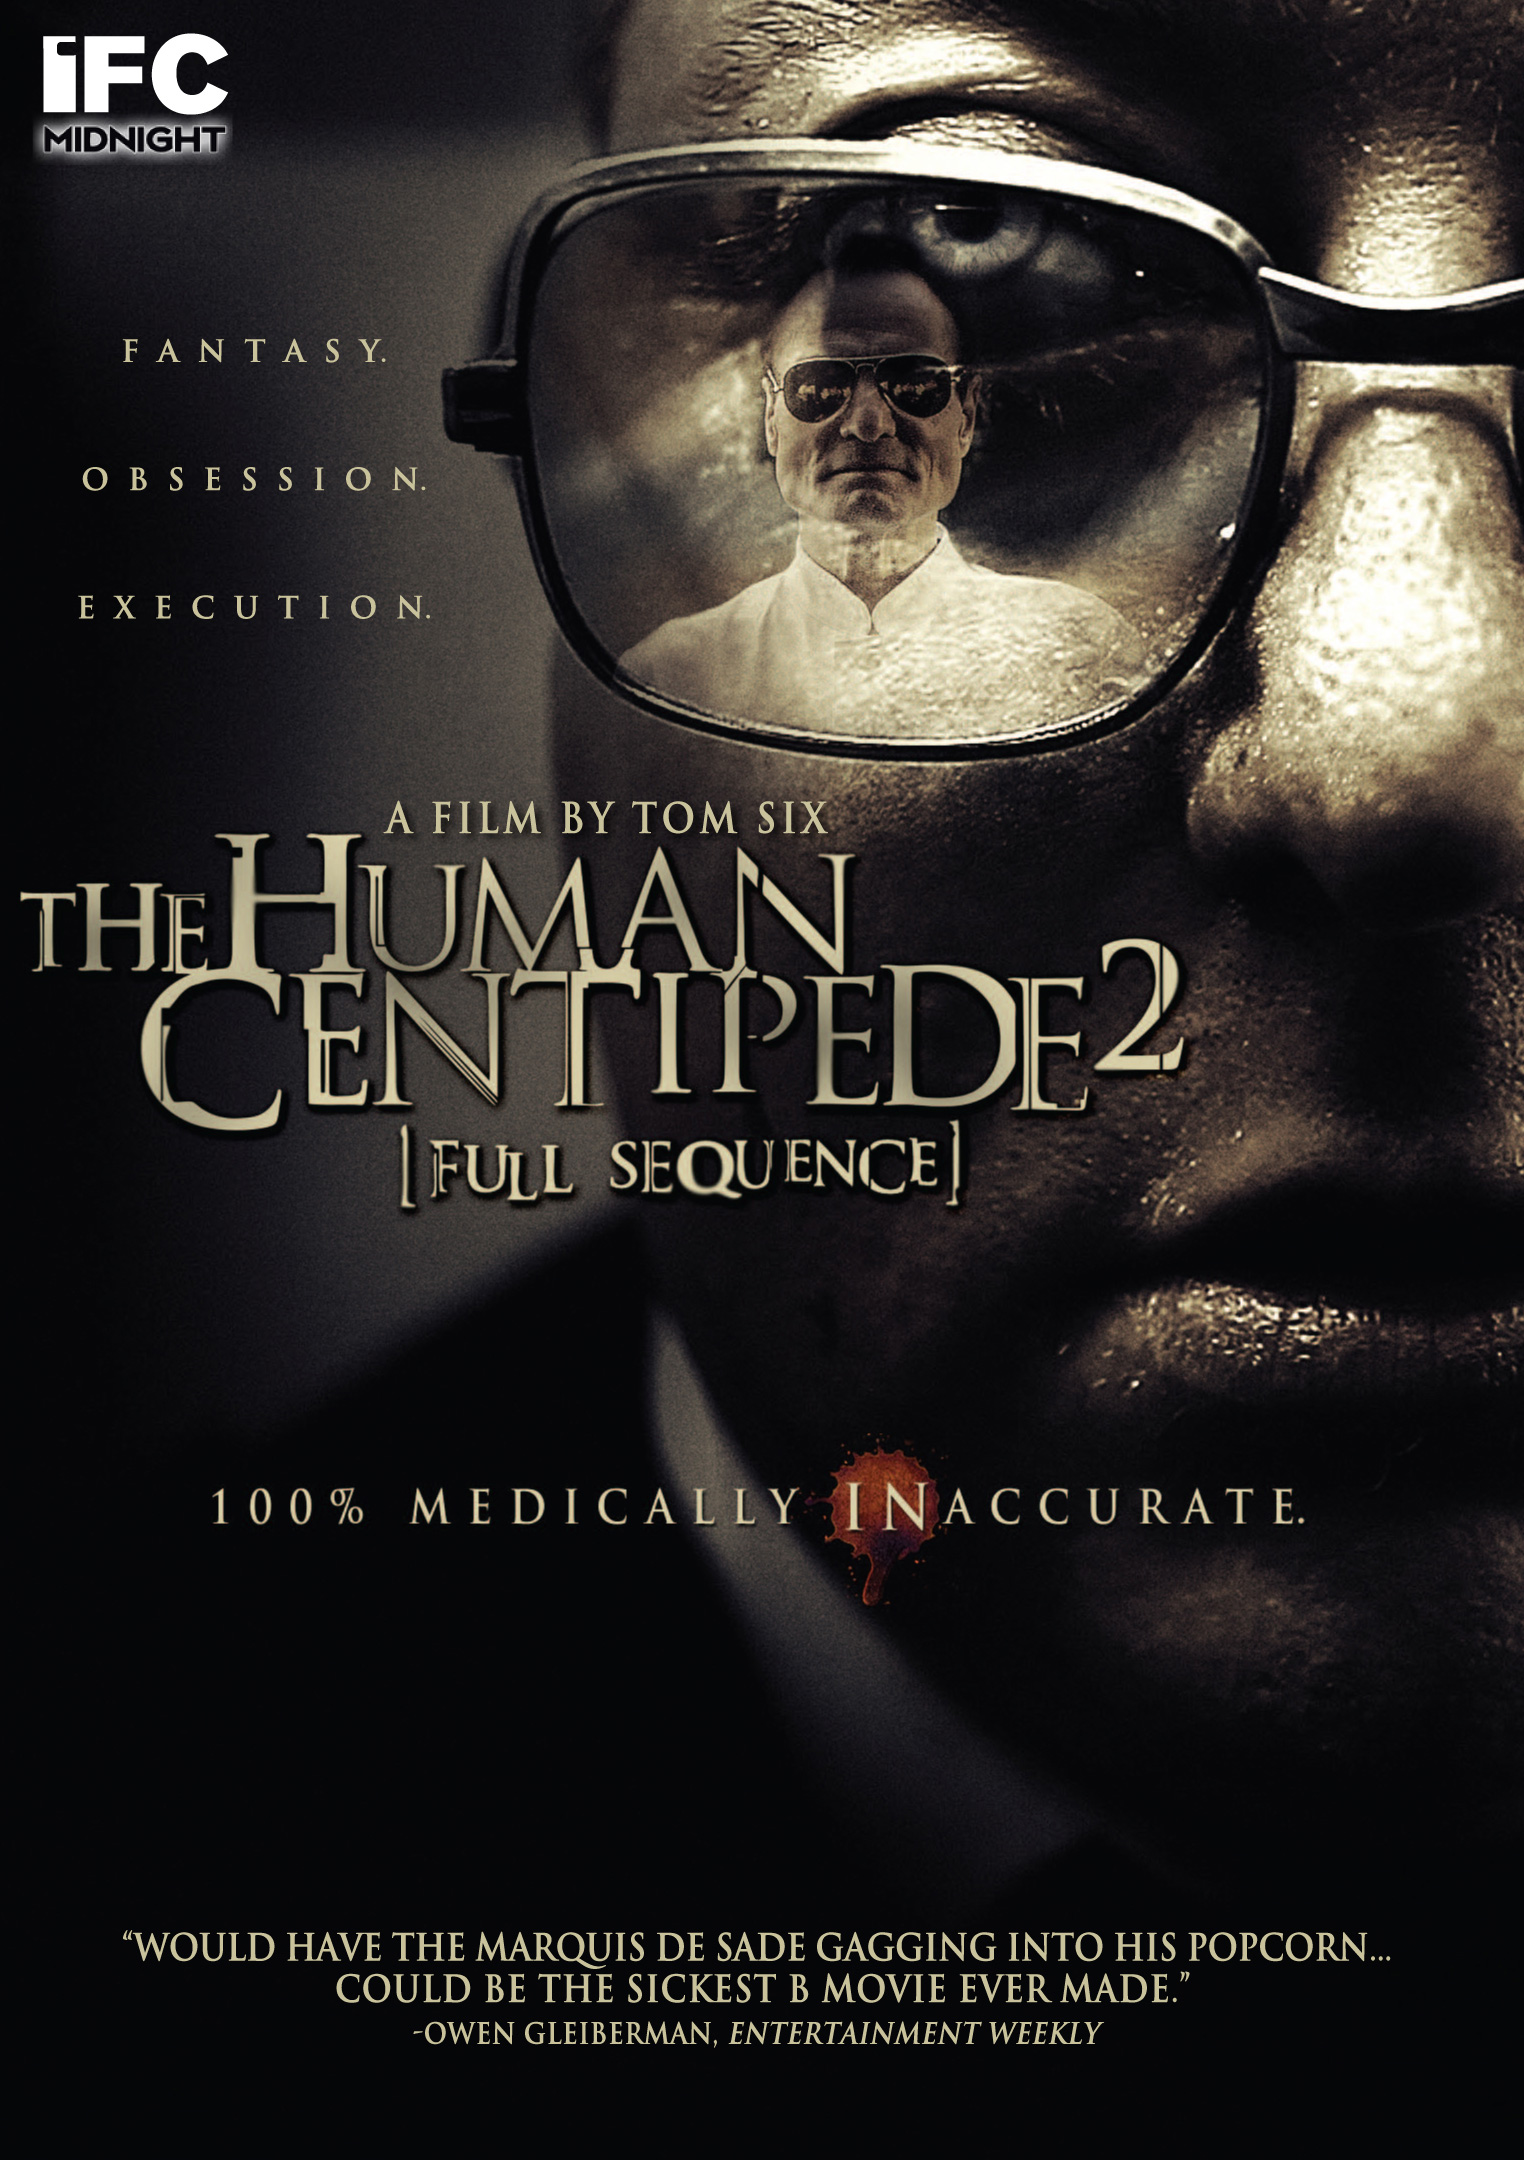 The Human Centipede 2: Full Sequence (2011) | Horror and Alternative Cinema  Reviews